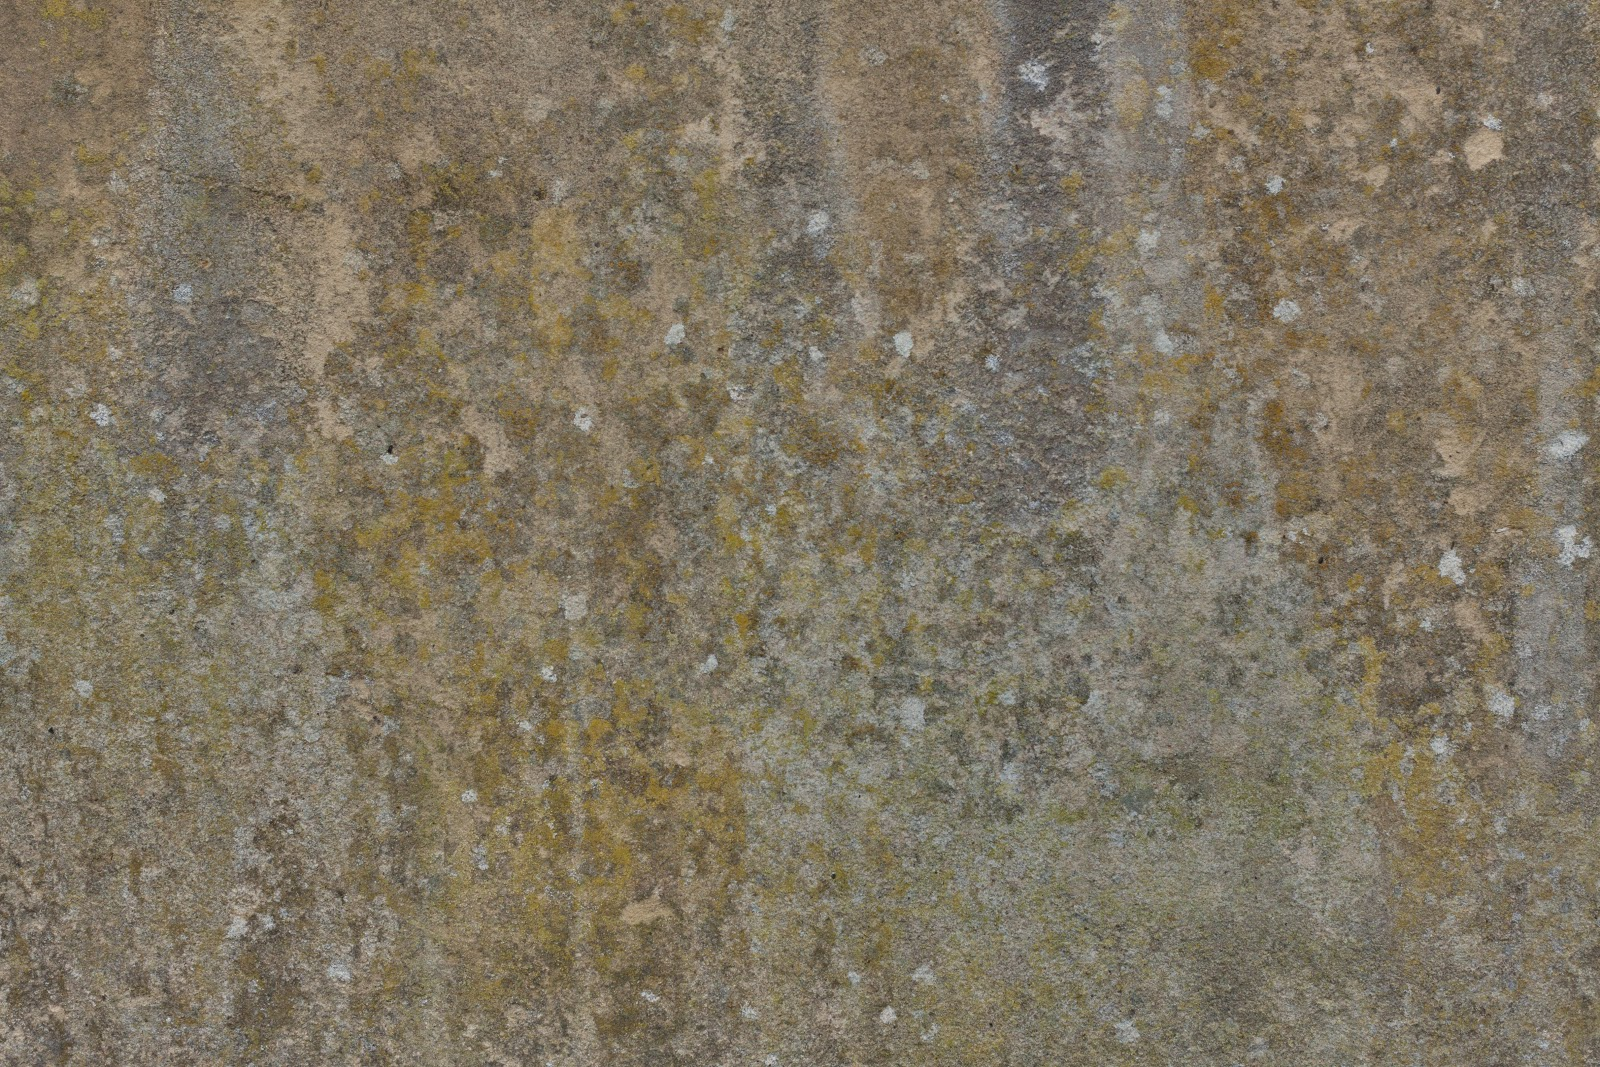 Nice dirty grungy wall texture with moss